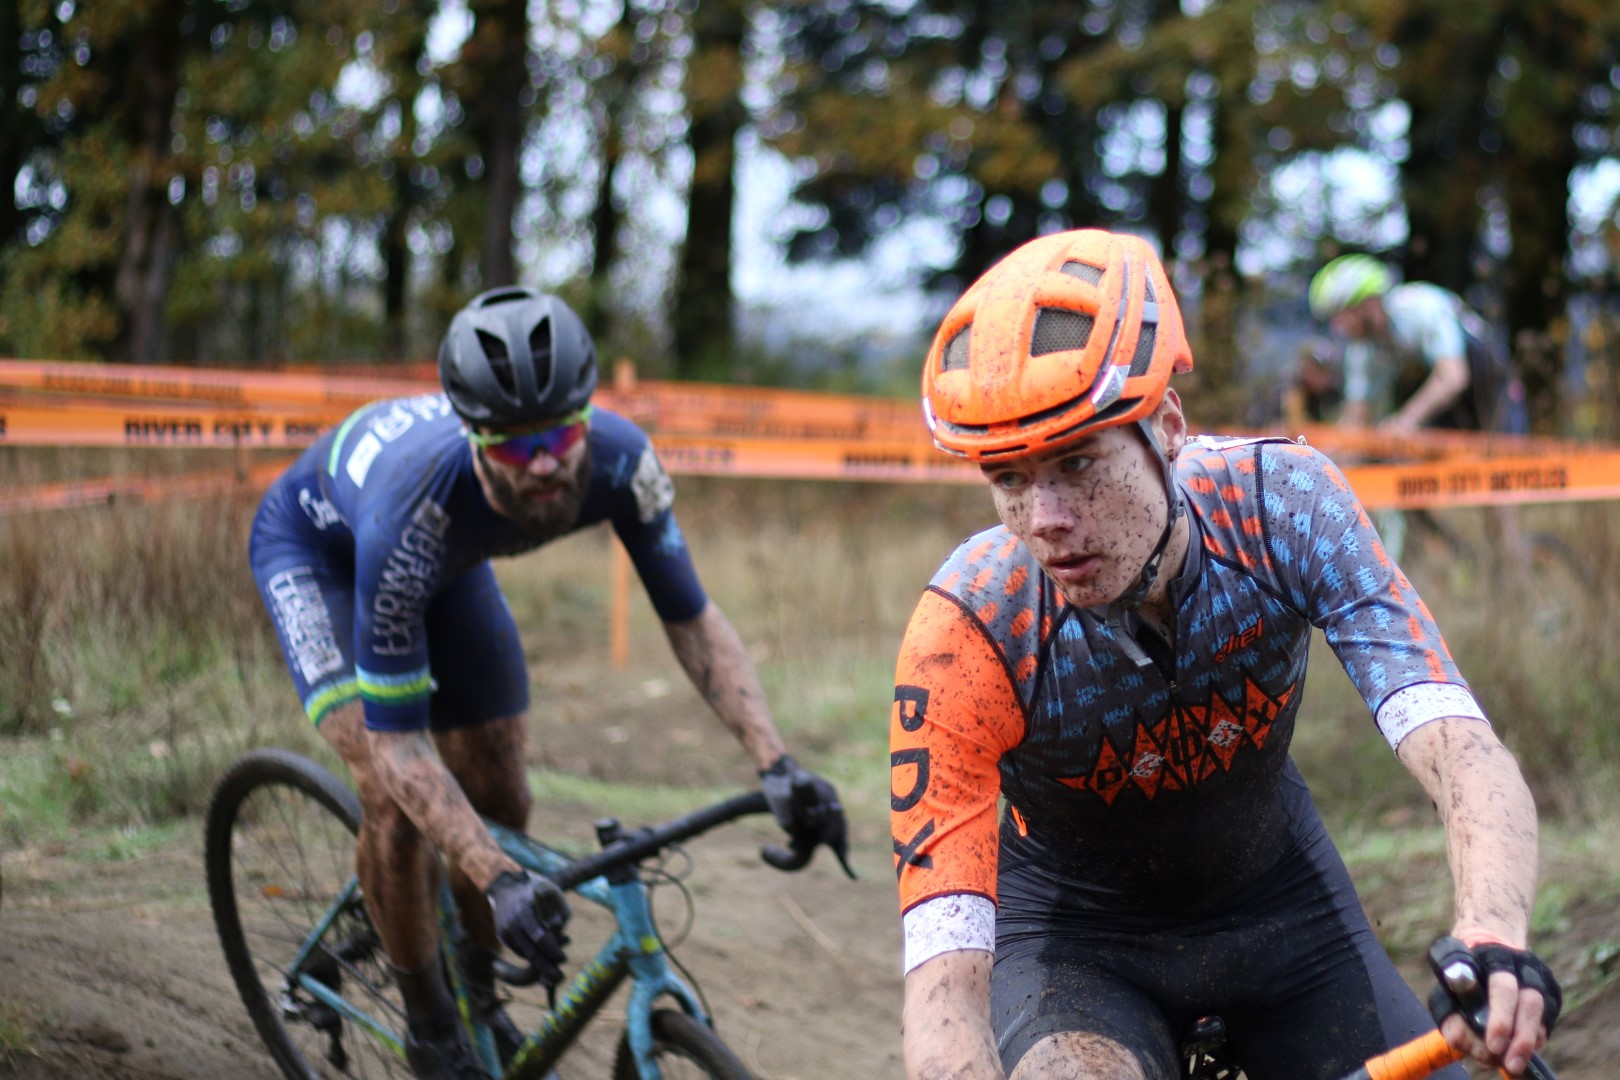 PDXTI-2018-CX-Crusade-04-Cascade-Locks (78).JPG